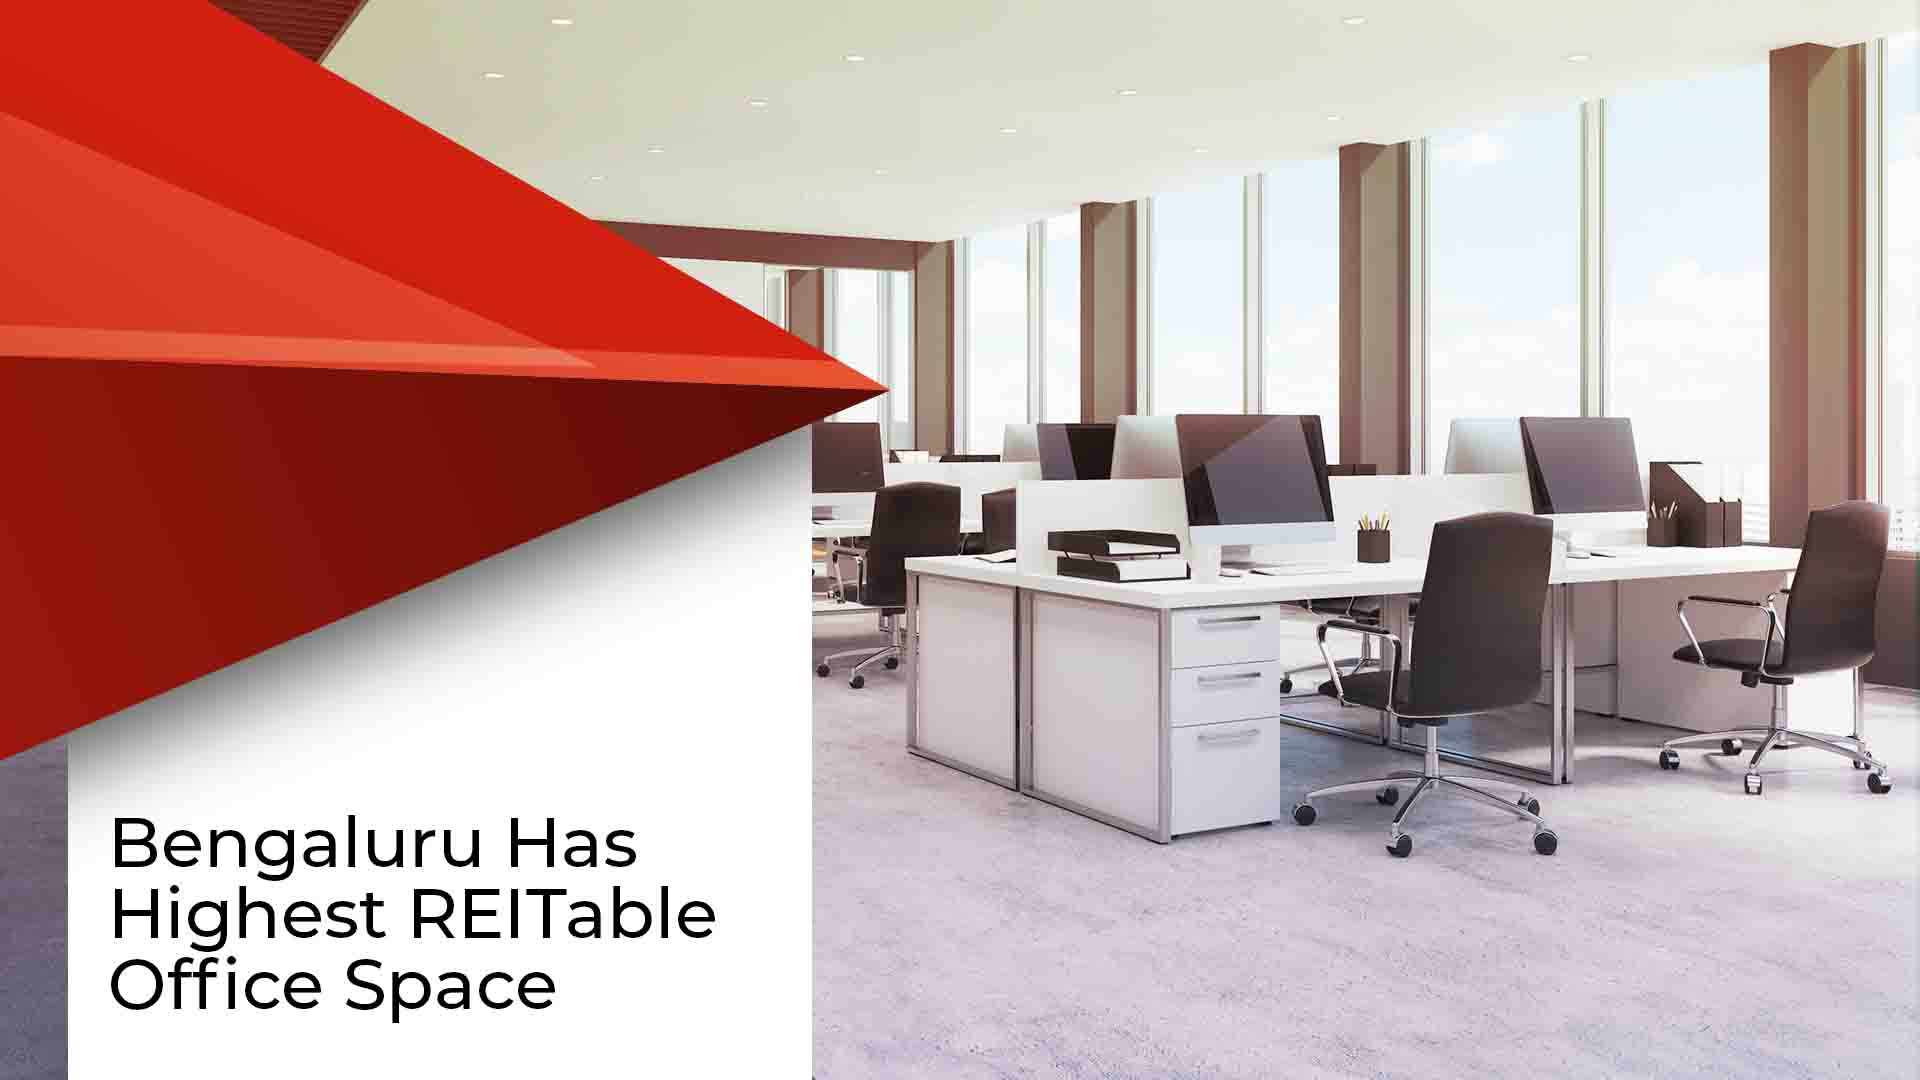 India To Offer 294 Million Square Feet Of REITable Office Space